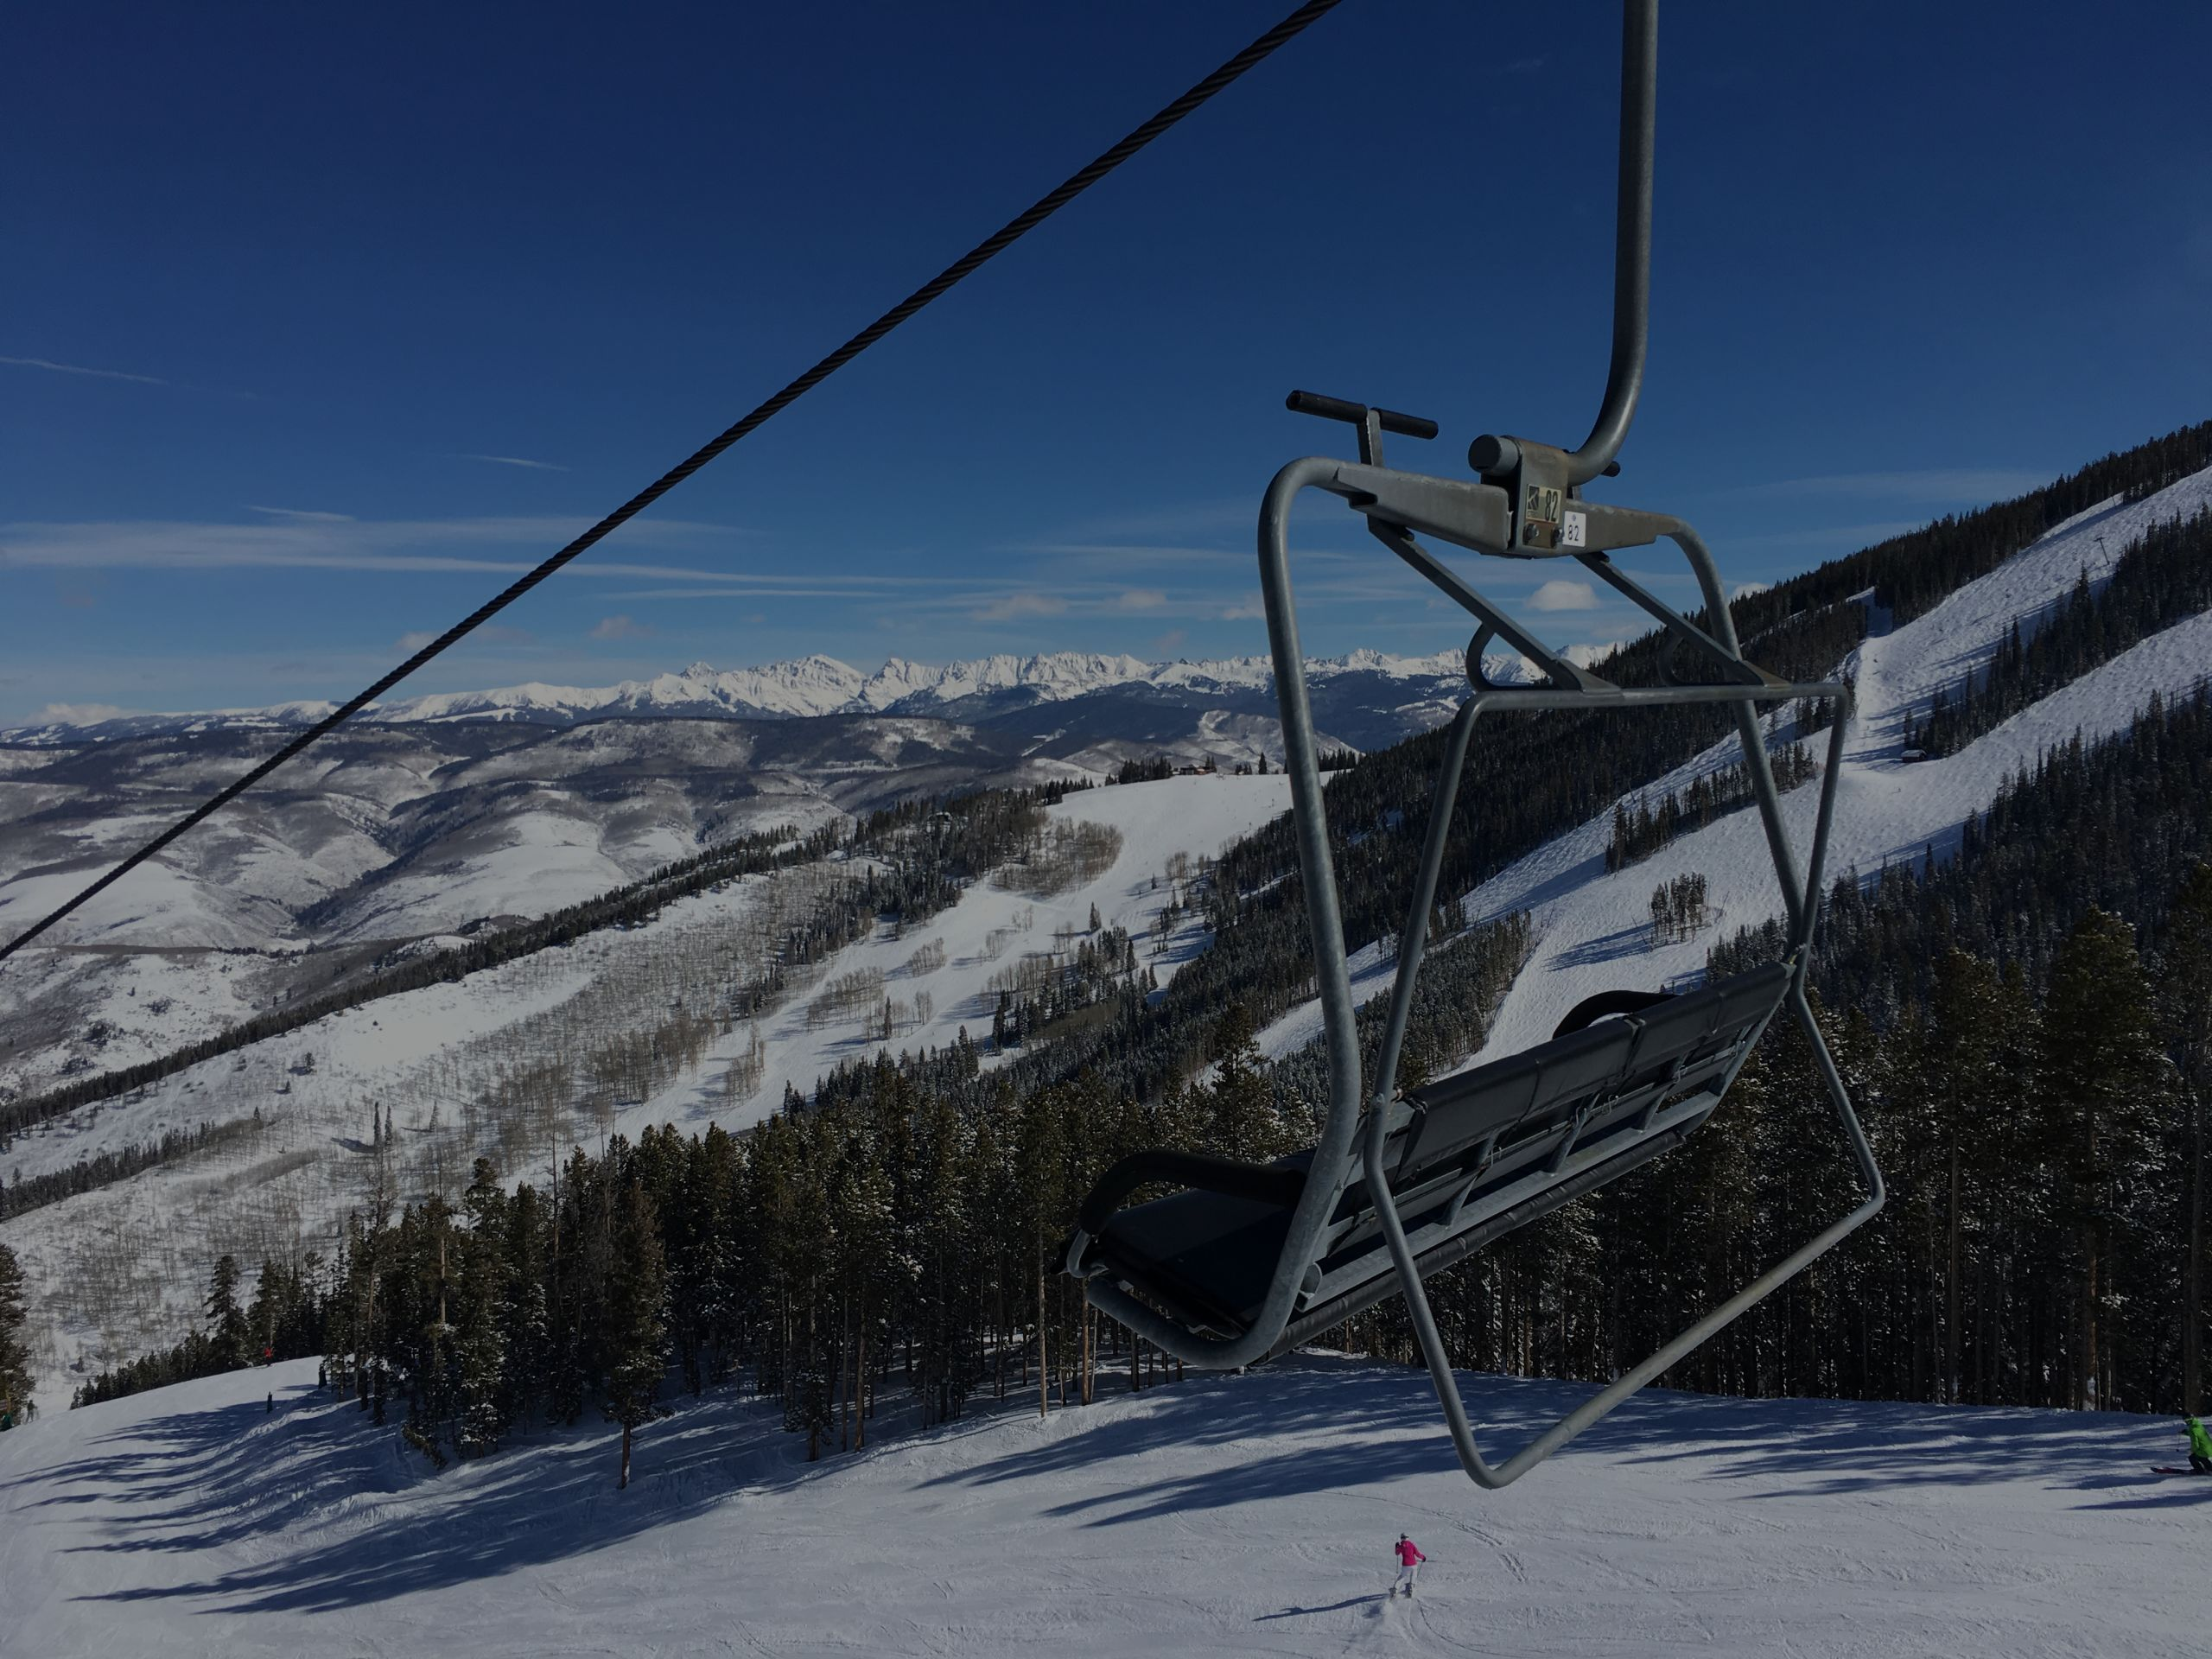 Riding High at Beaver Creek